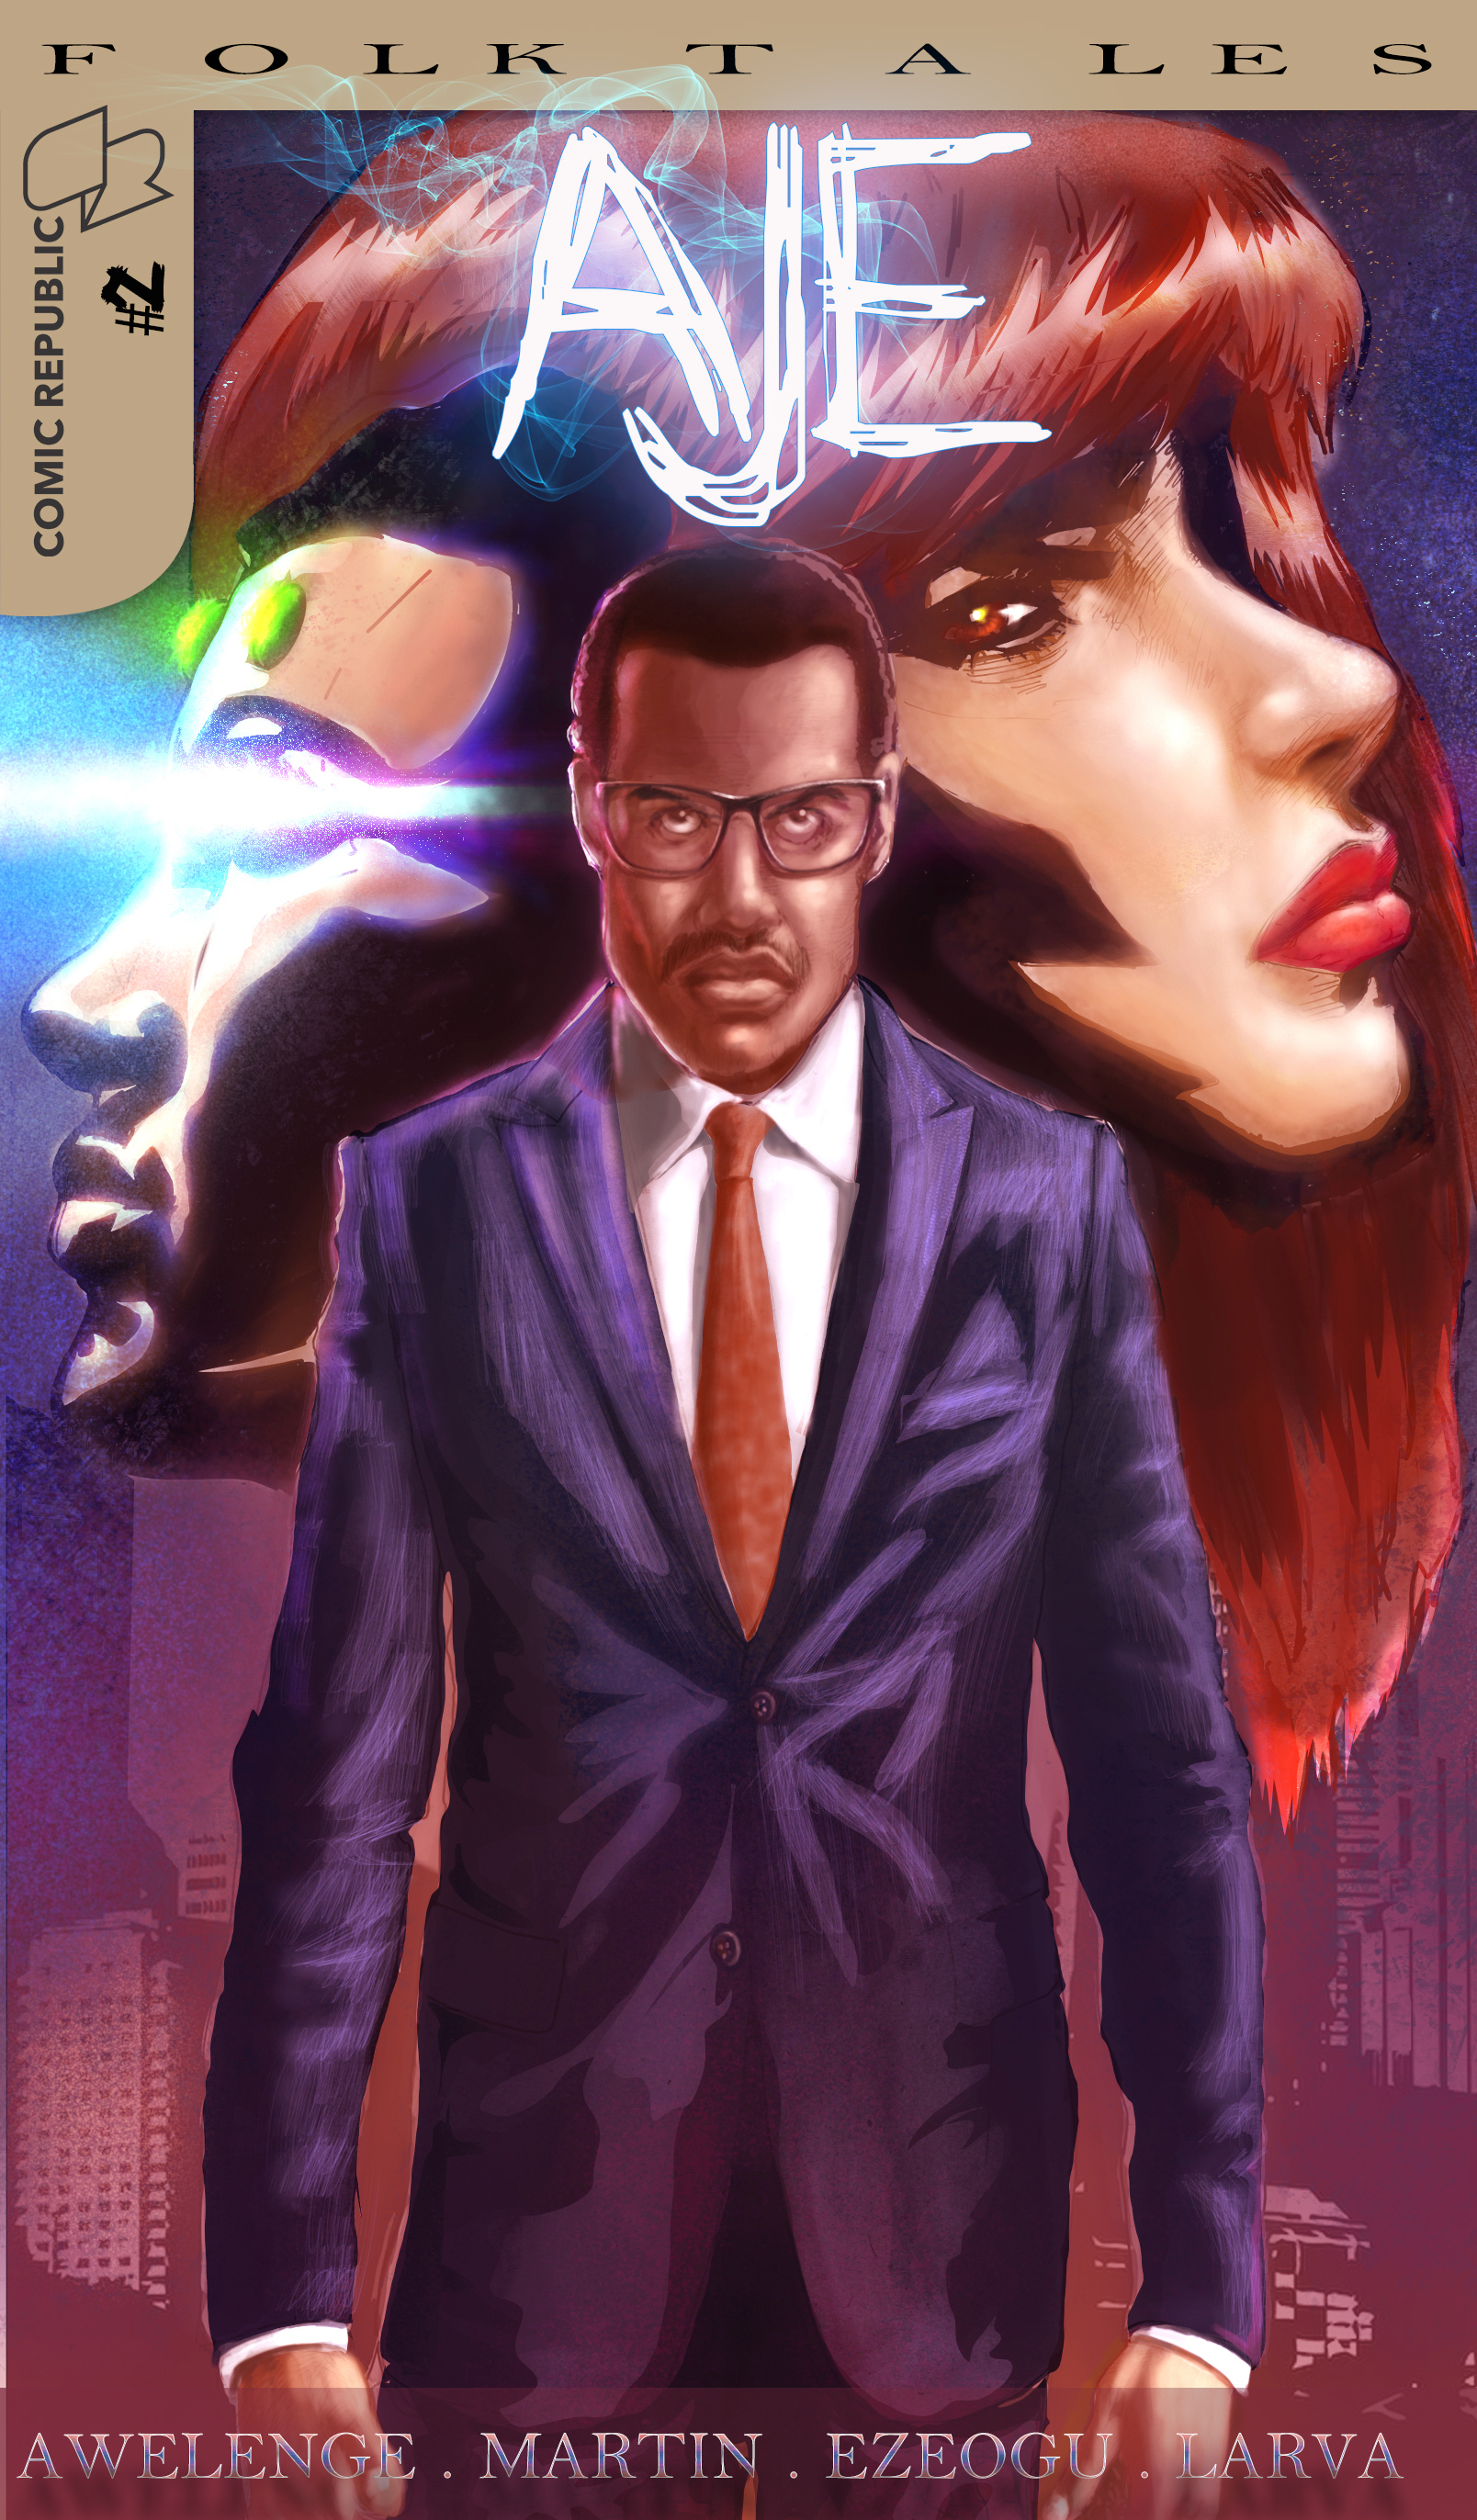 Visibility for African Superhero comics